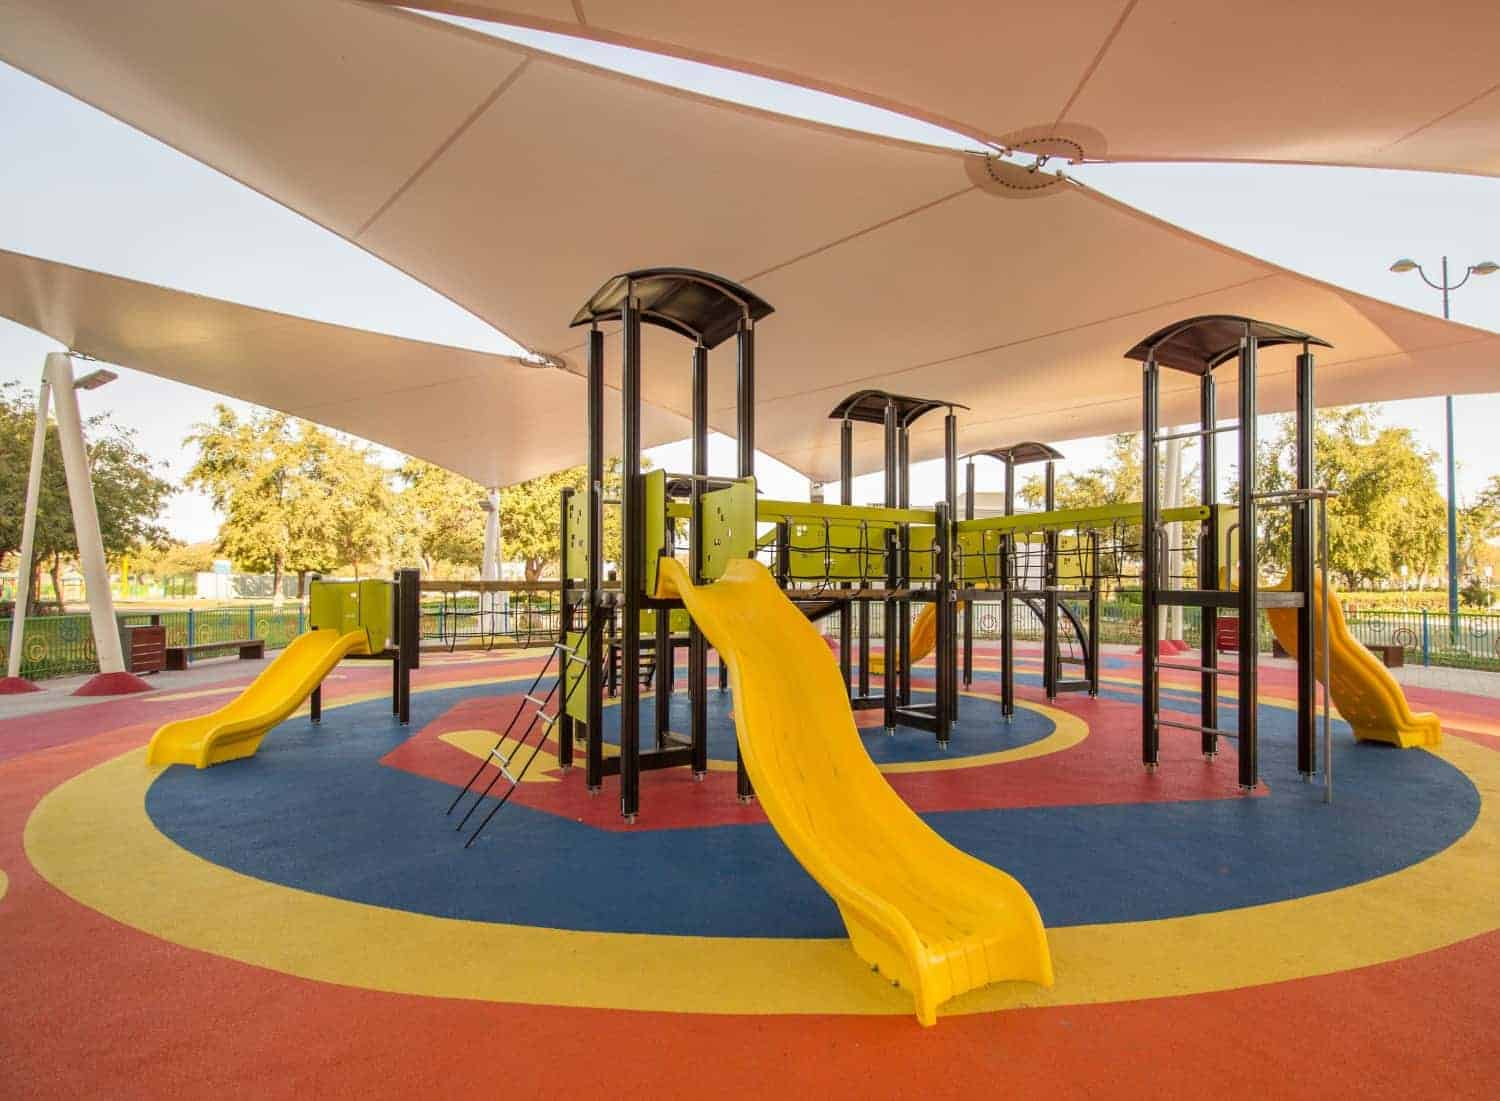 stock-photo-shaded-kid-s-playground-activity-tower-equipment-at-the-lake-park-in-abu-dhabi-1391708588